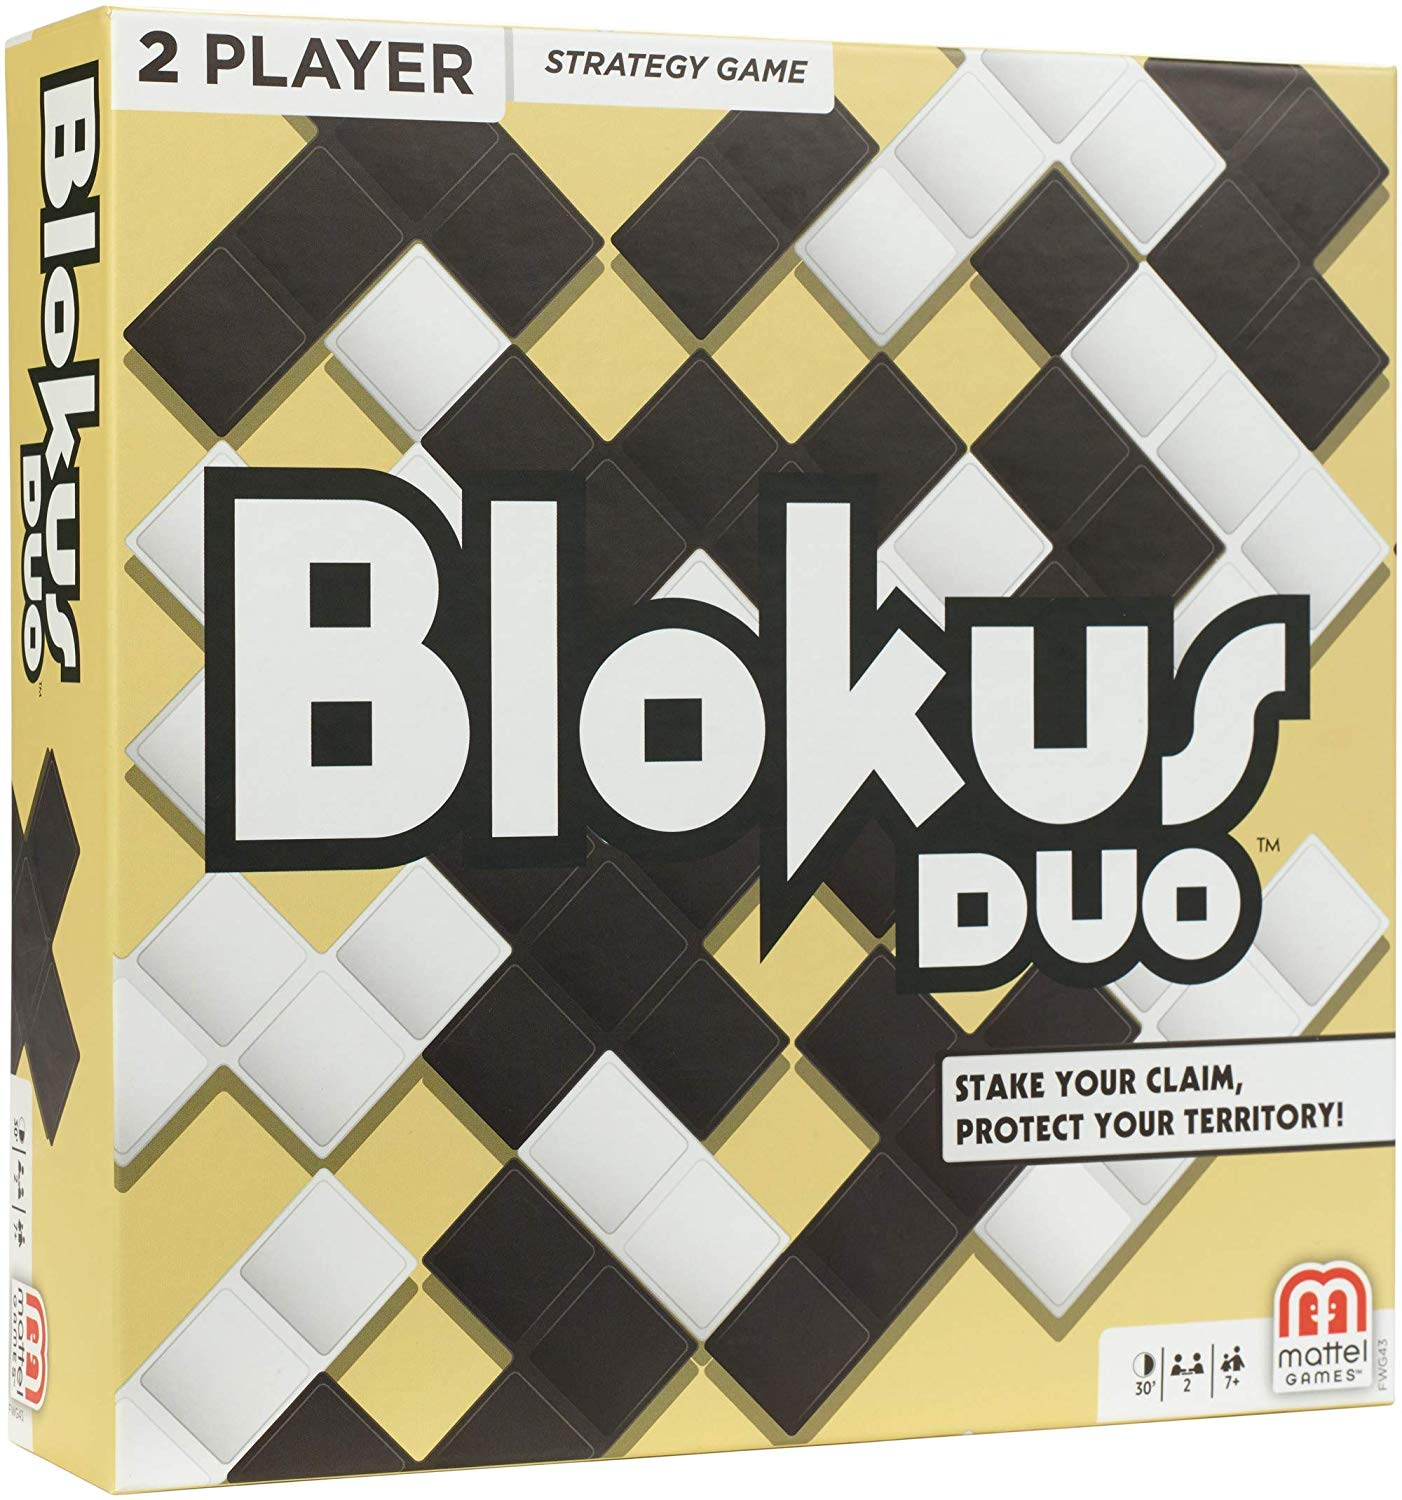 best 2-player board games for date night - blokus duo.jpg